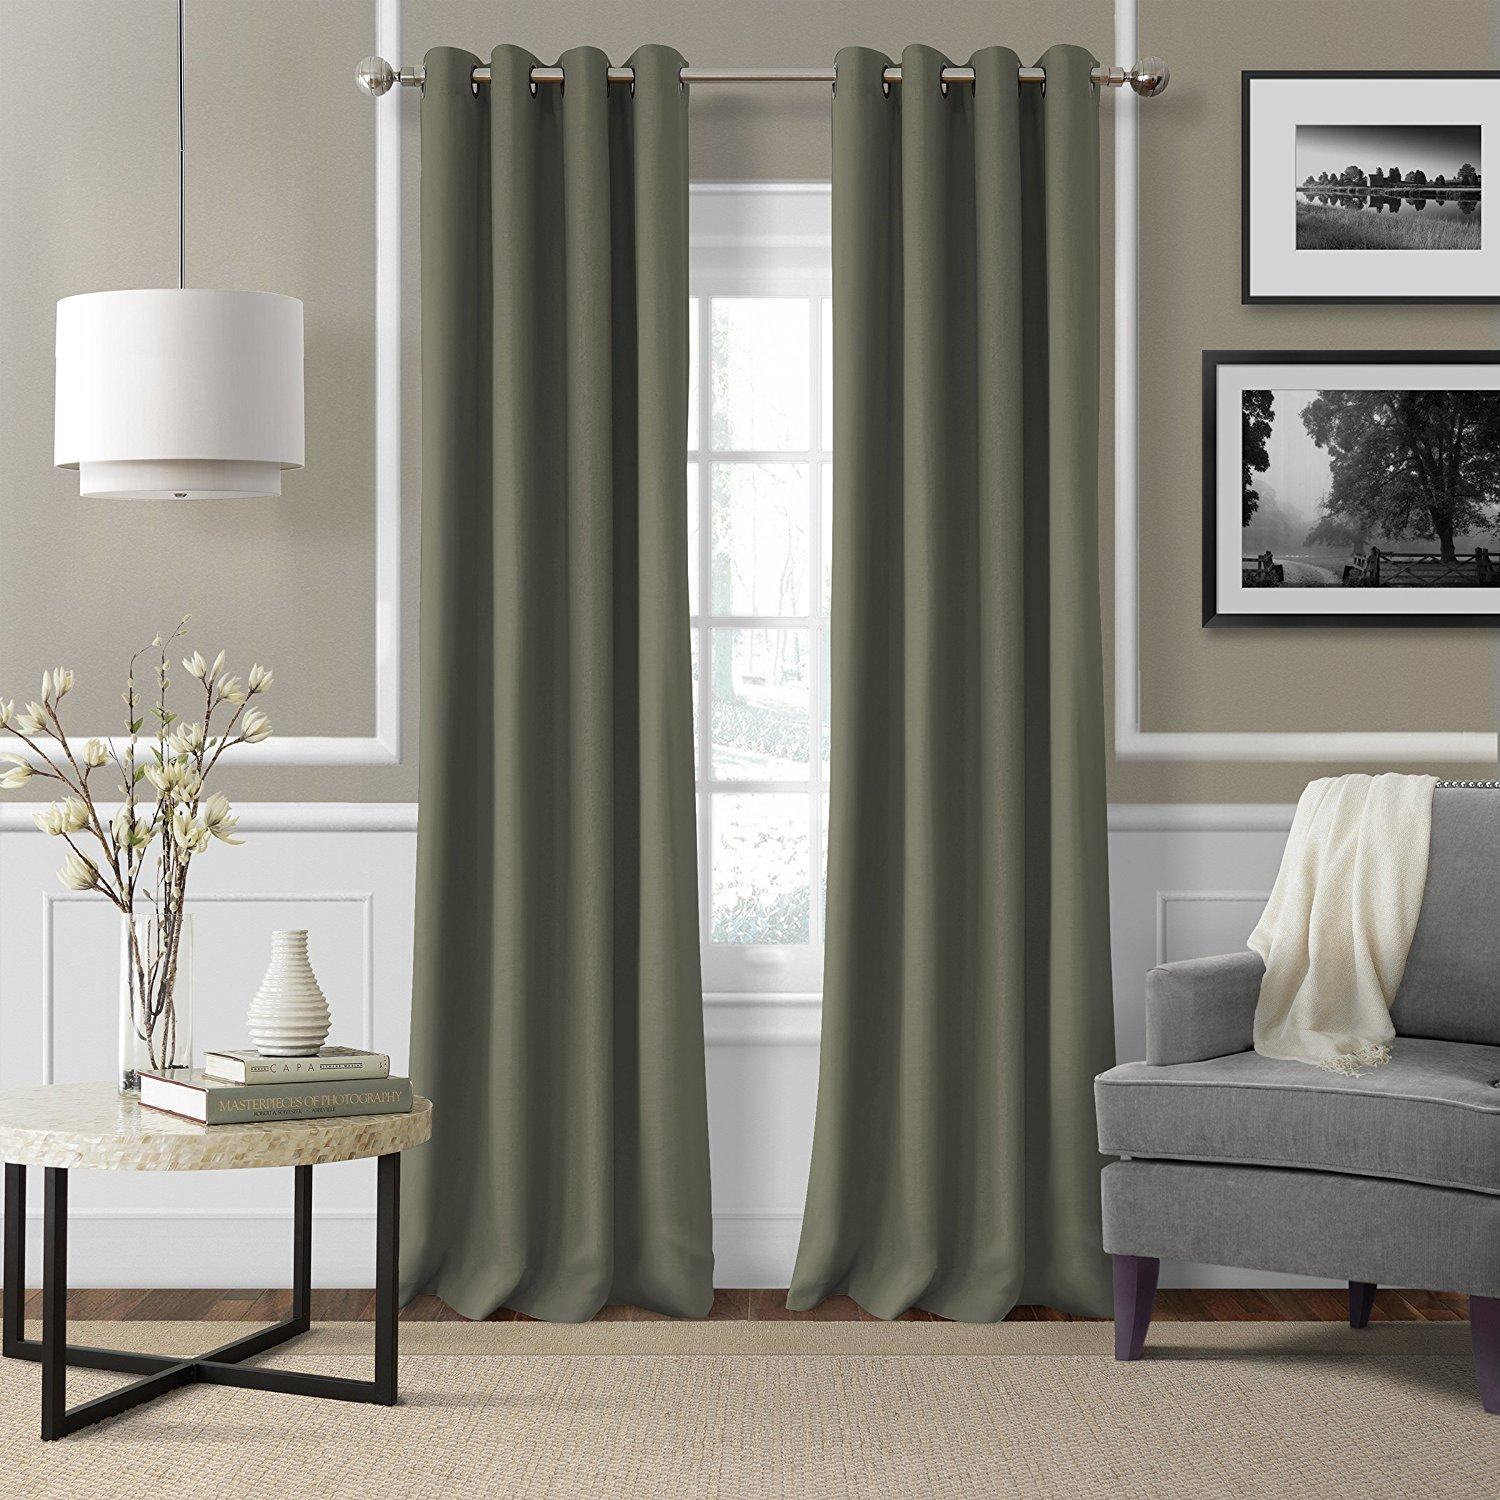 design curtains of room luxury stock decorating beautiful graphics awesome full macy elegant macys size for ideas family kitchen living s